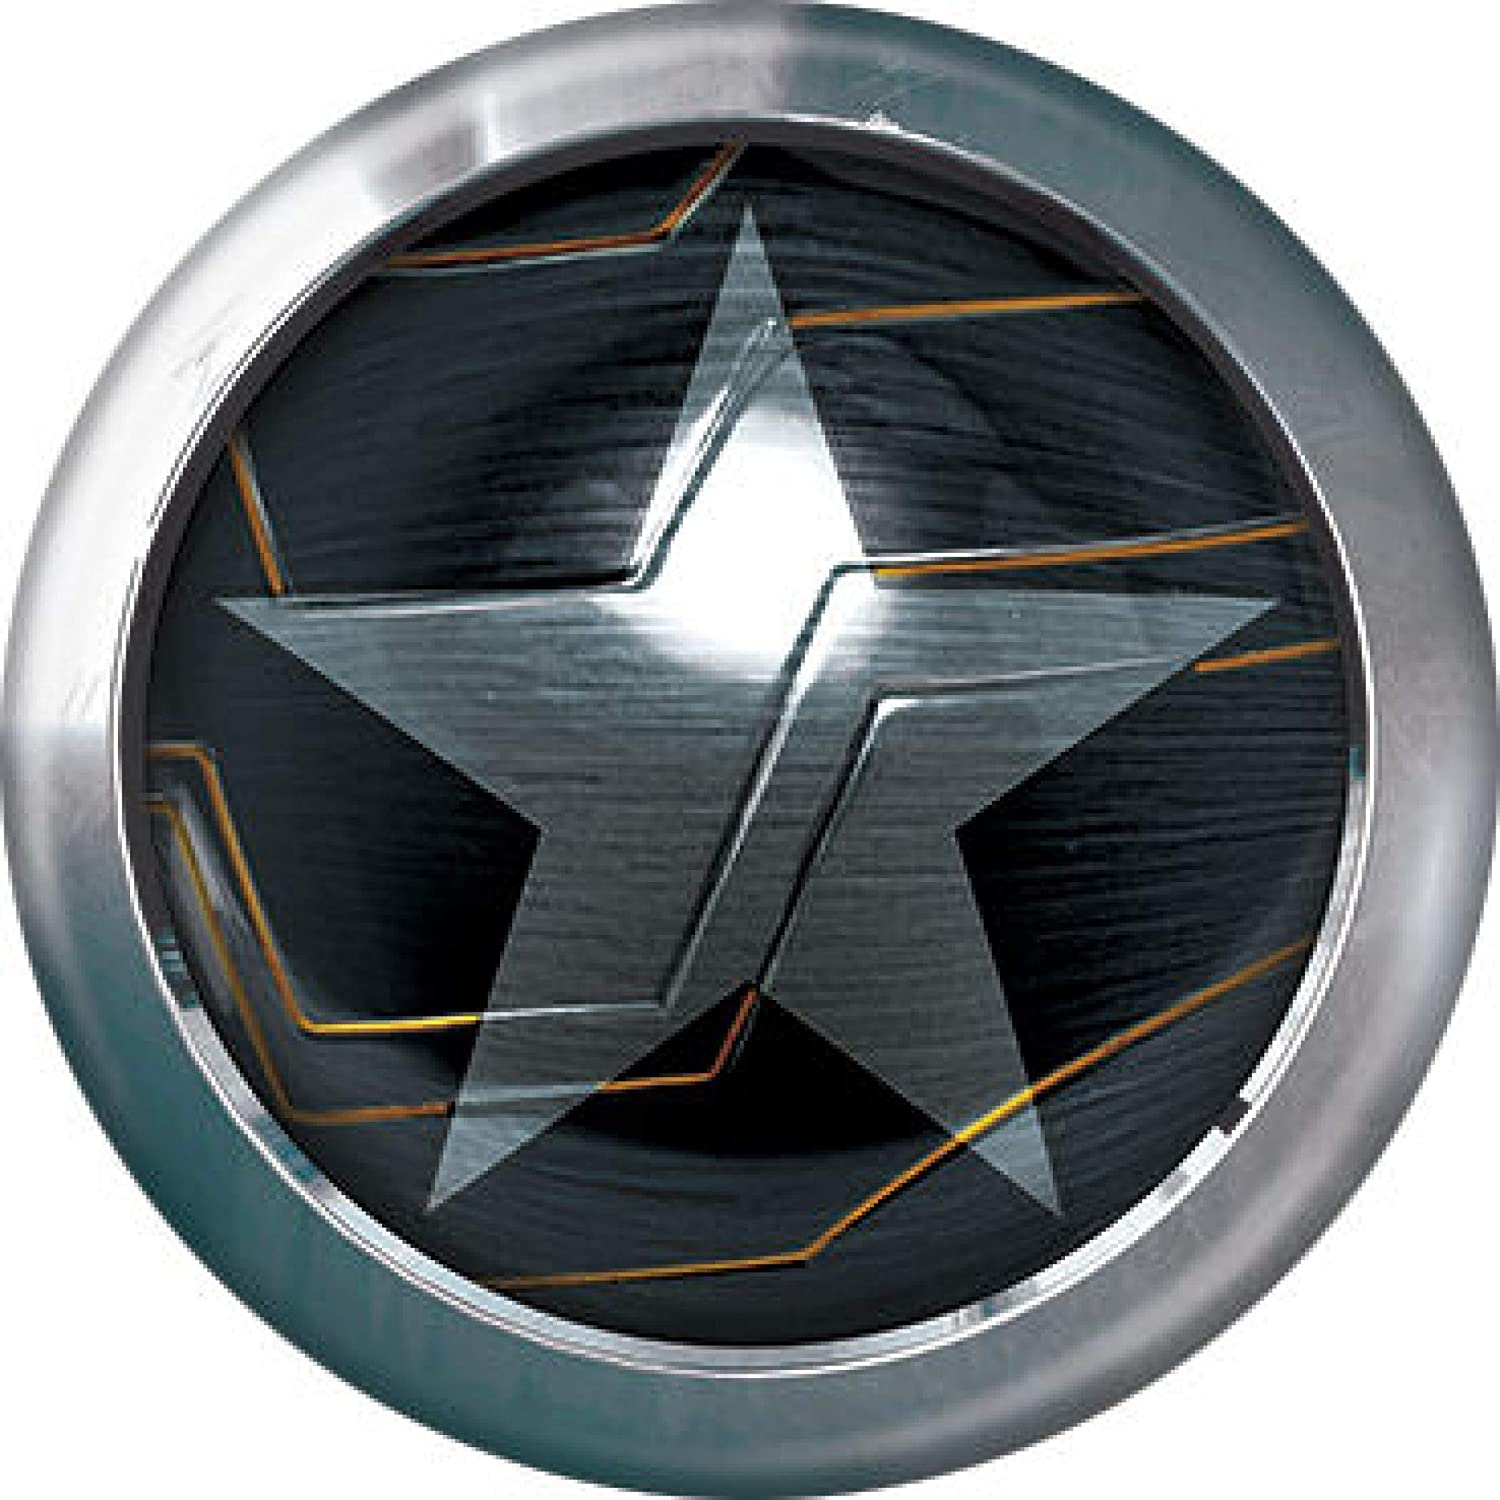 Winter Soldier Symbol From Falcon and The Ser Manufacturer regenerated Recommendation product